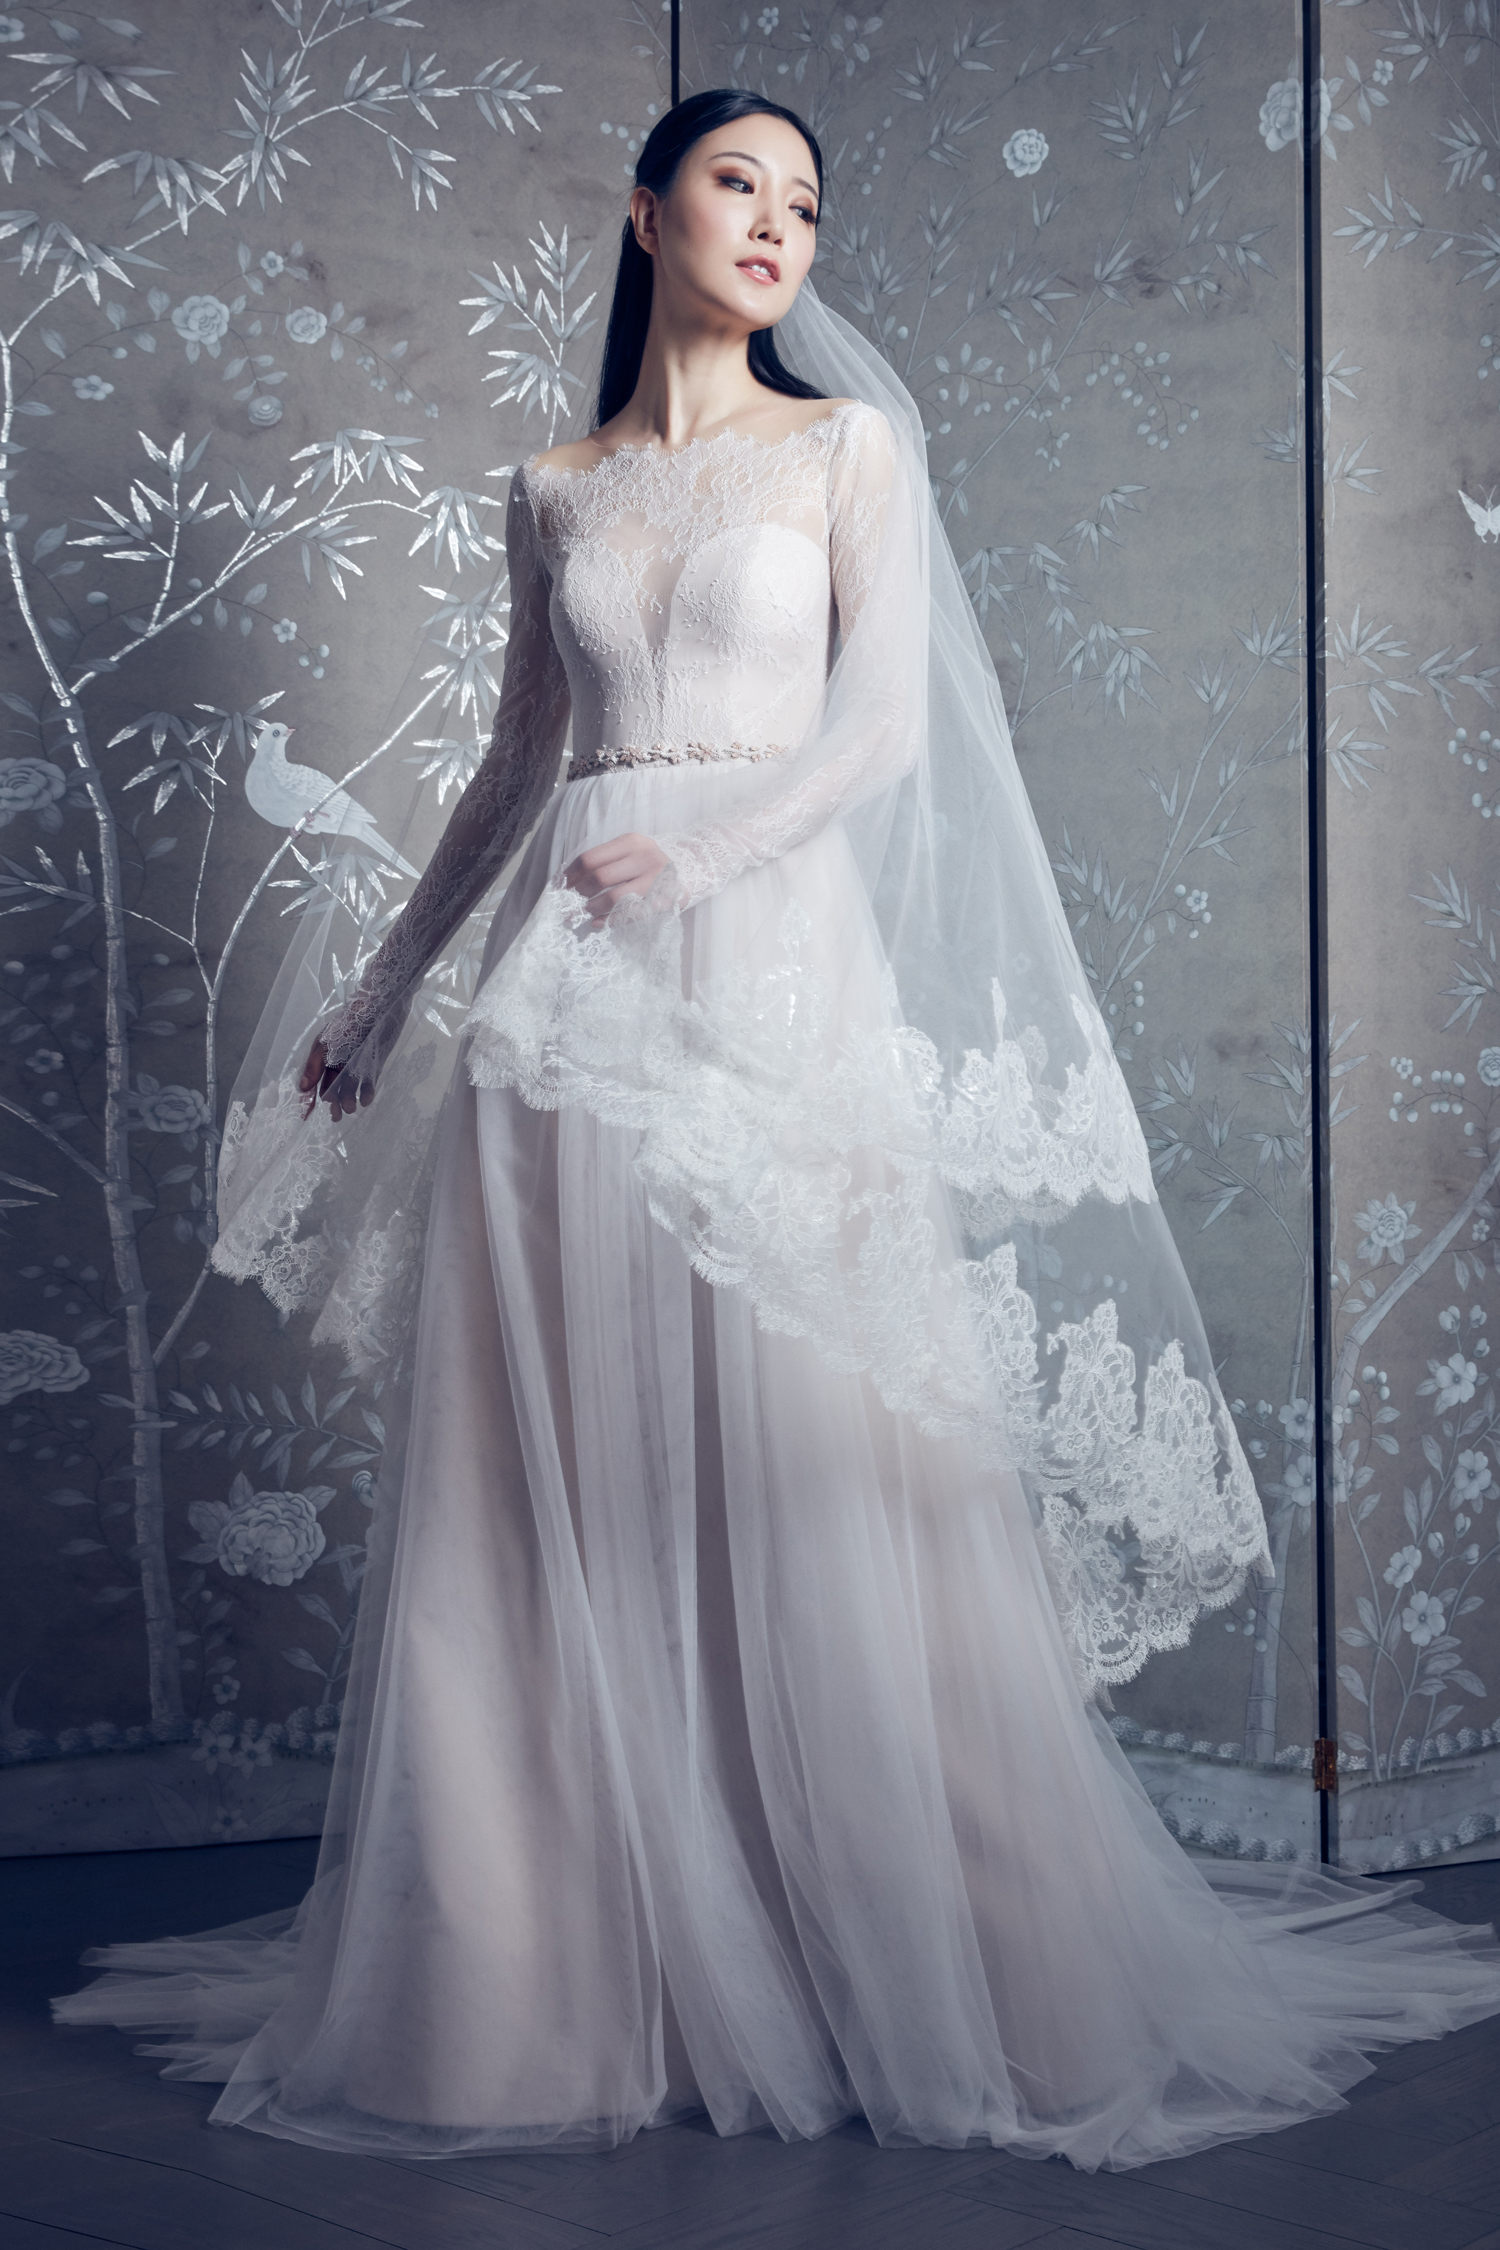 legends romona keveza long sleeve illusion boatneck a-line wedding dress spring 2020